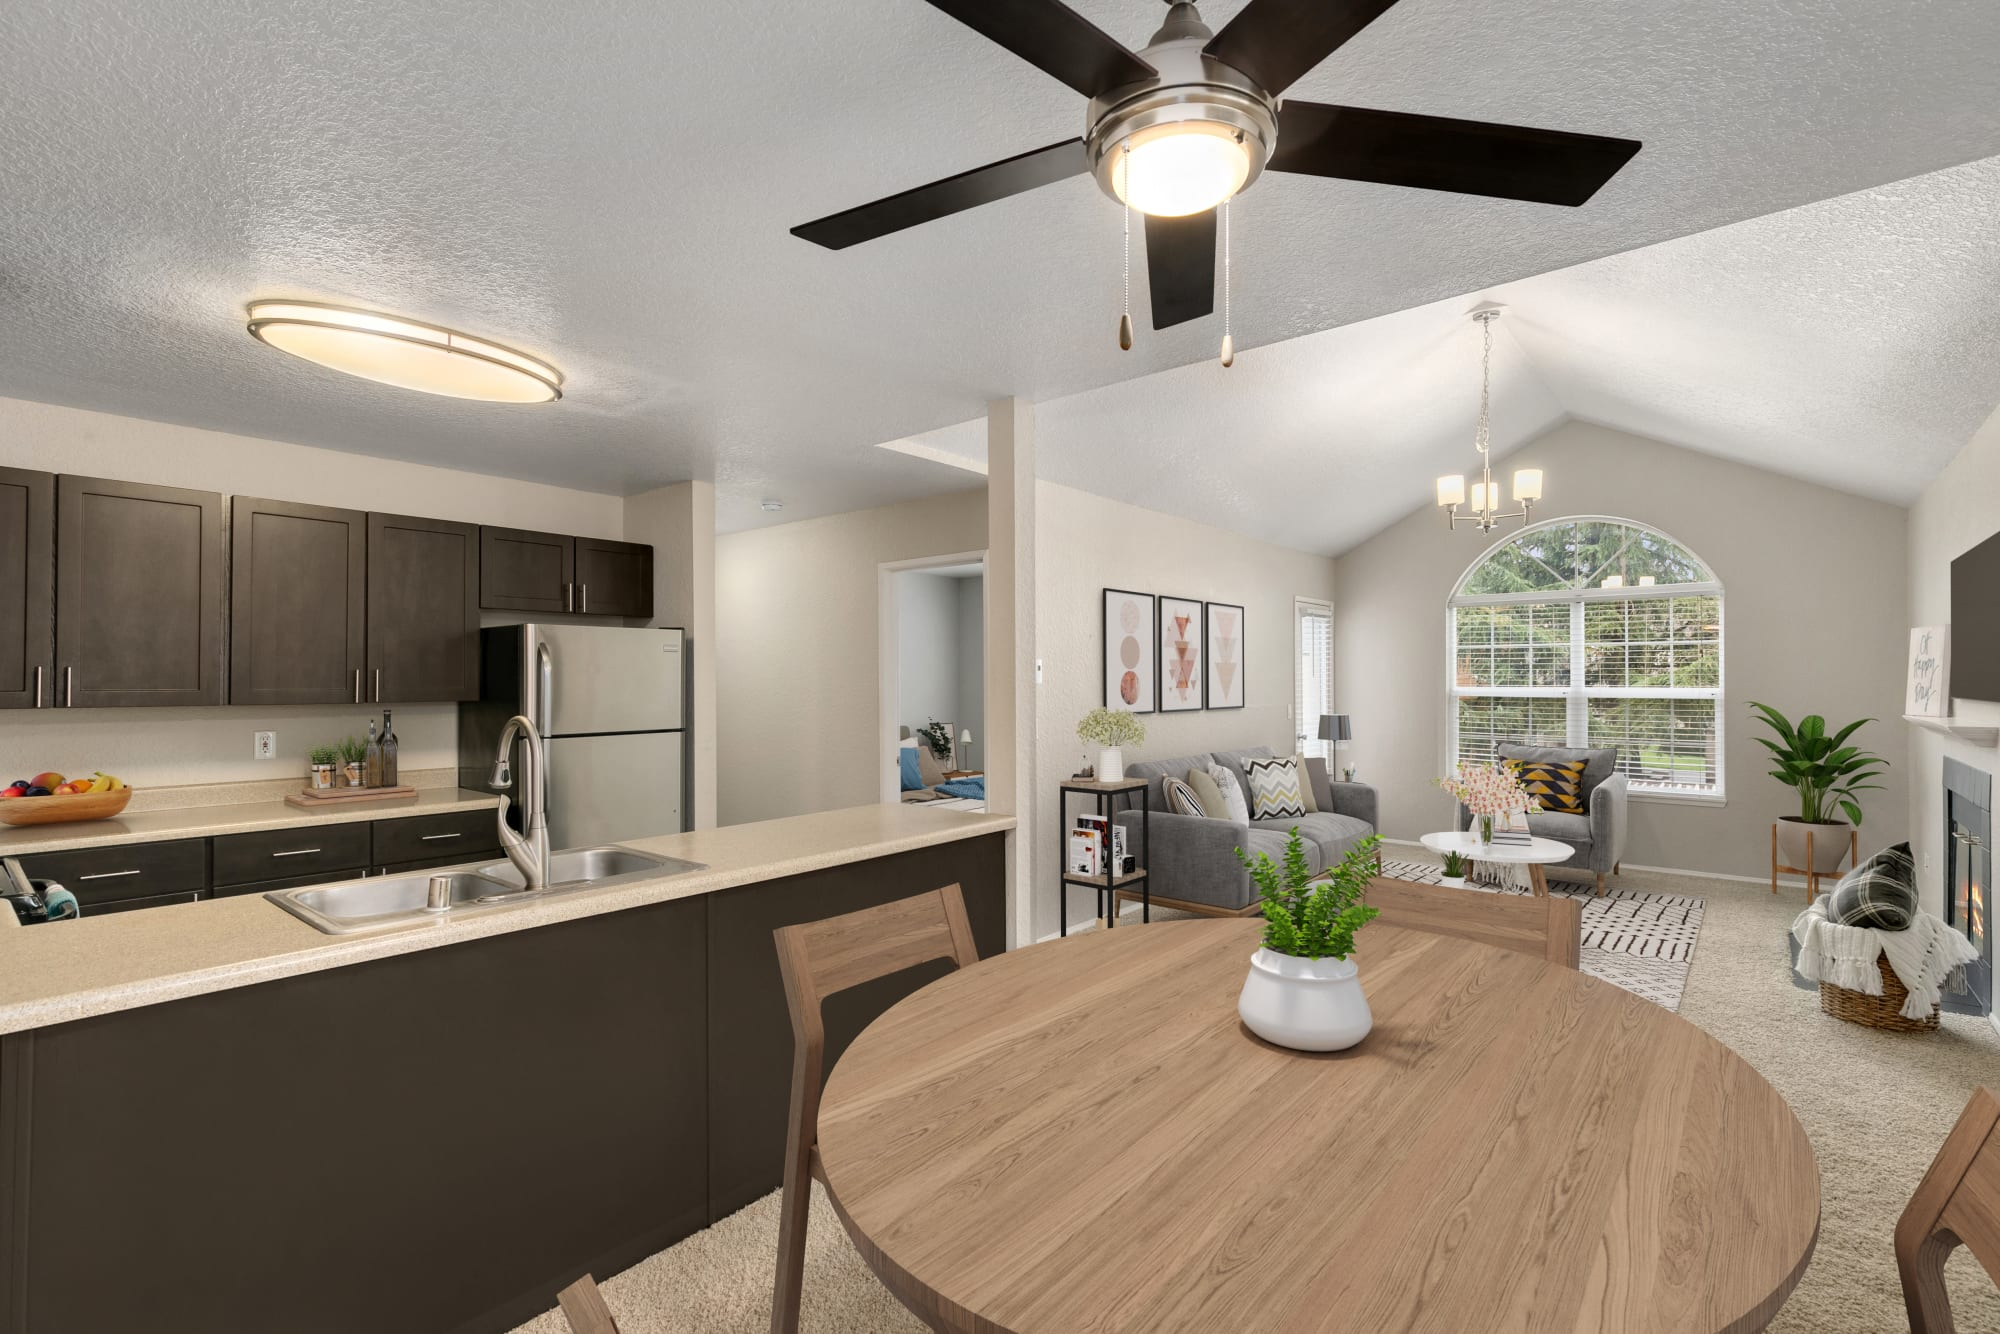 Photos Of Carriage Park Apartments In Vancouver Washington